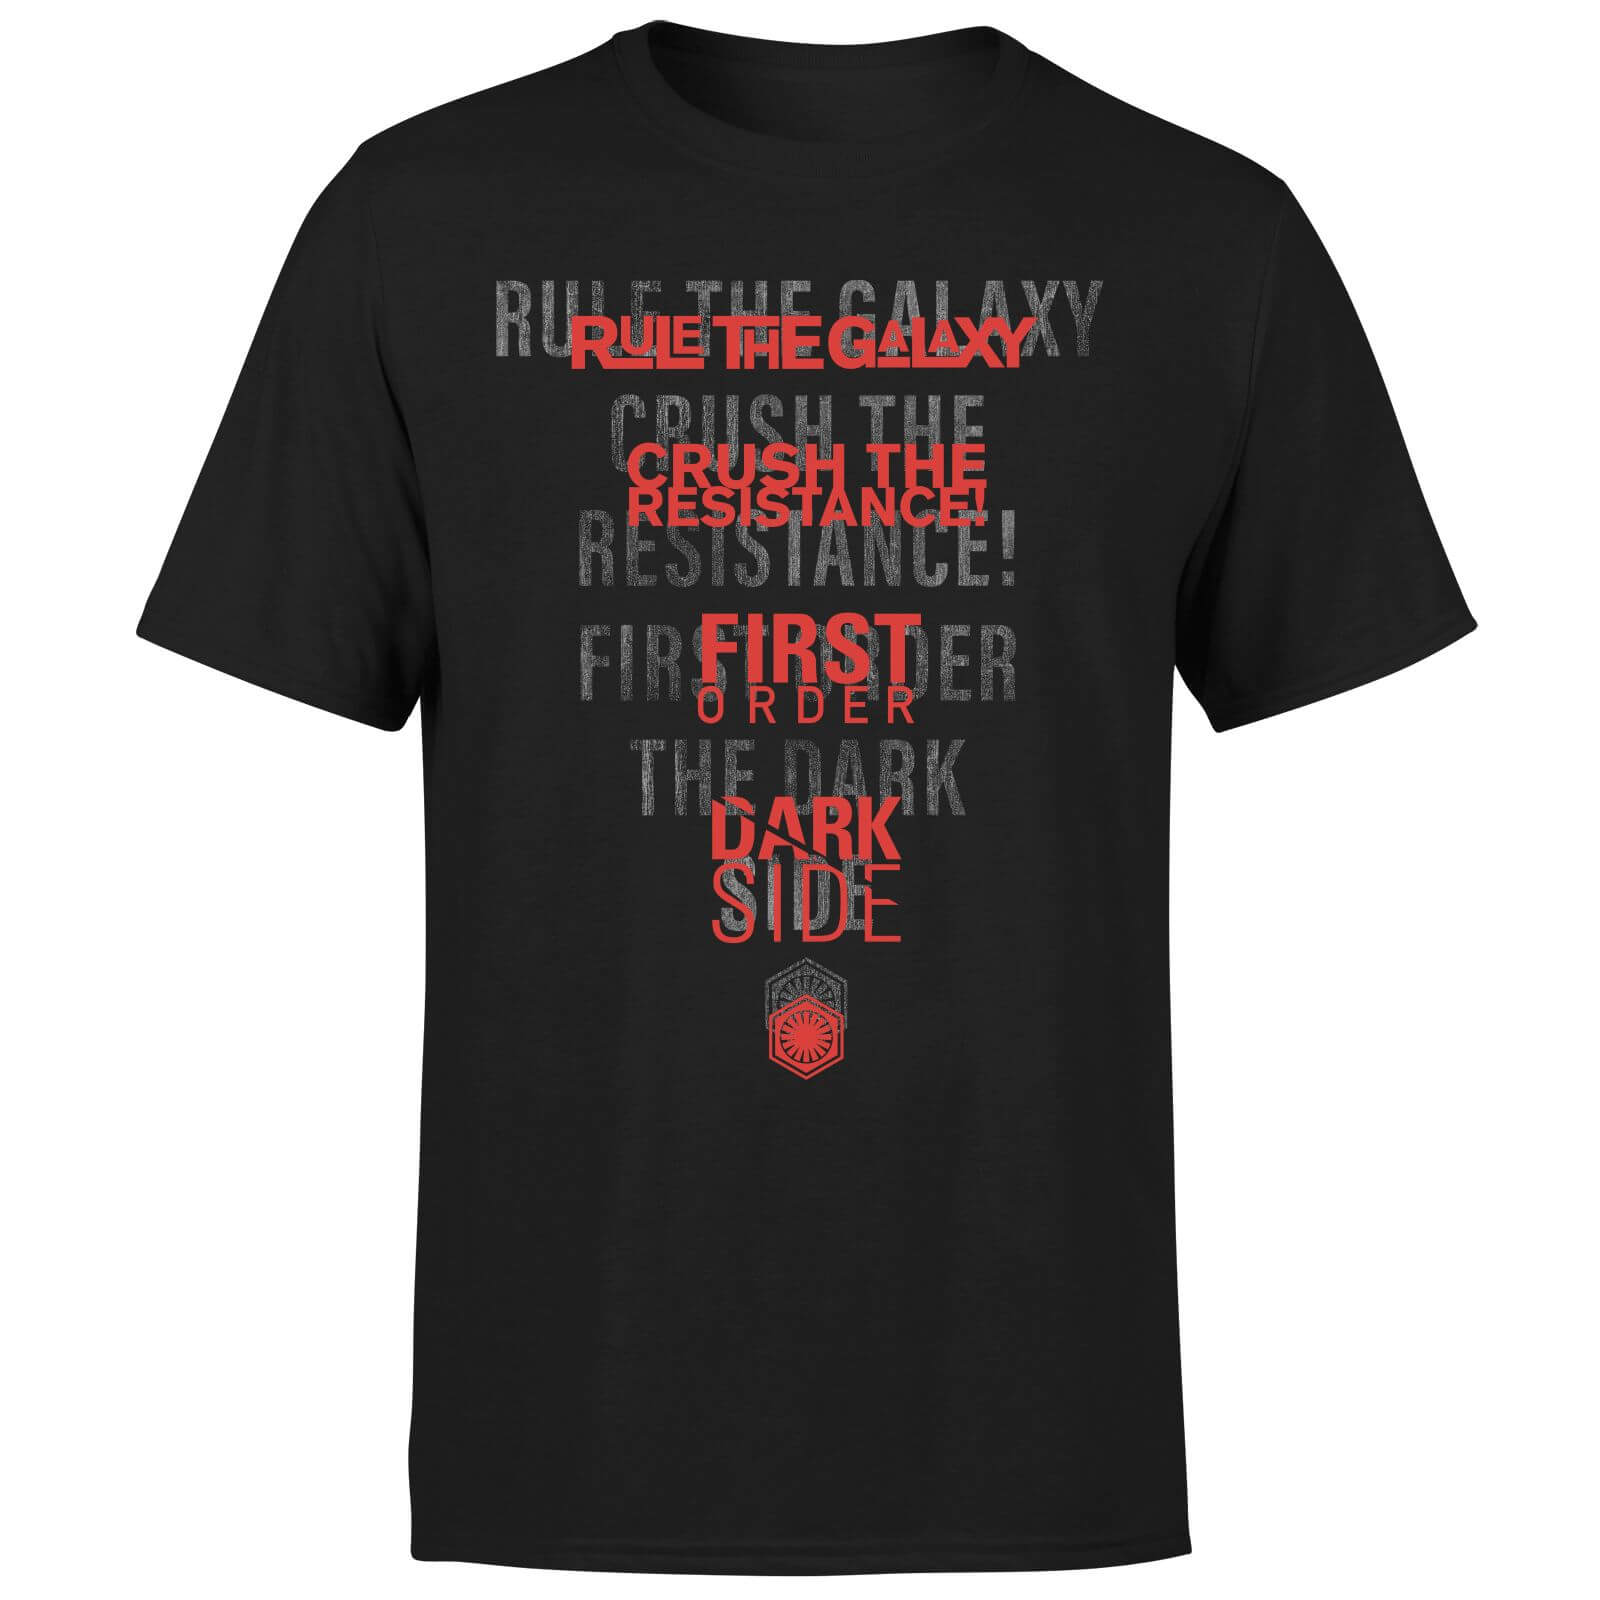 Star Wars Dark Side Echo Black T-Shirt - Black